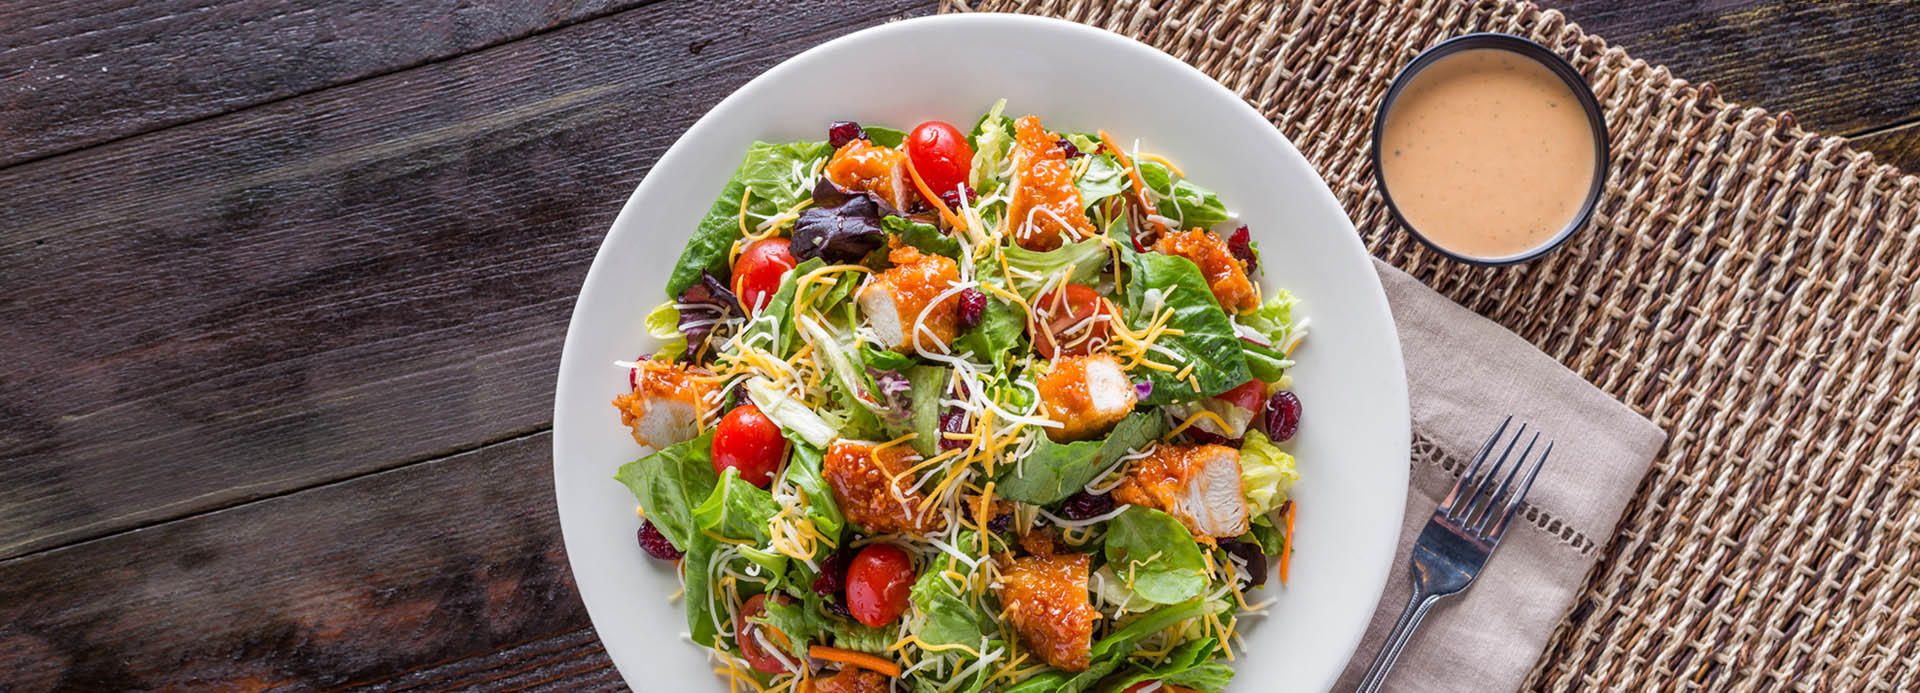 Our Sticky Finger salad is a fan-favorite! Try it today!